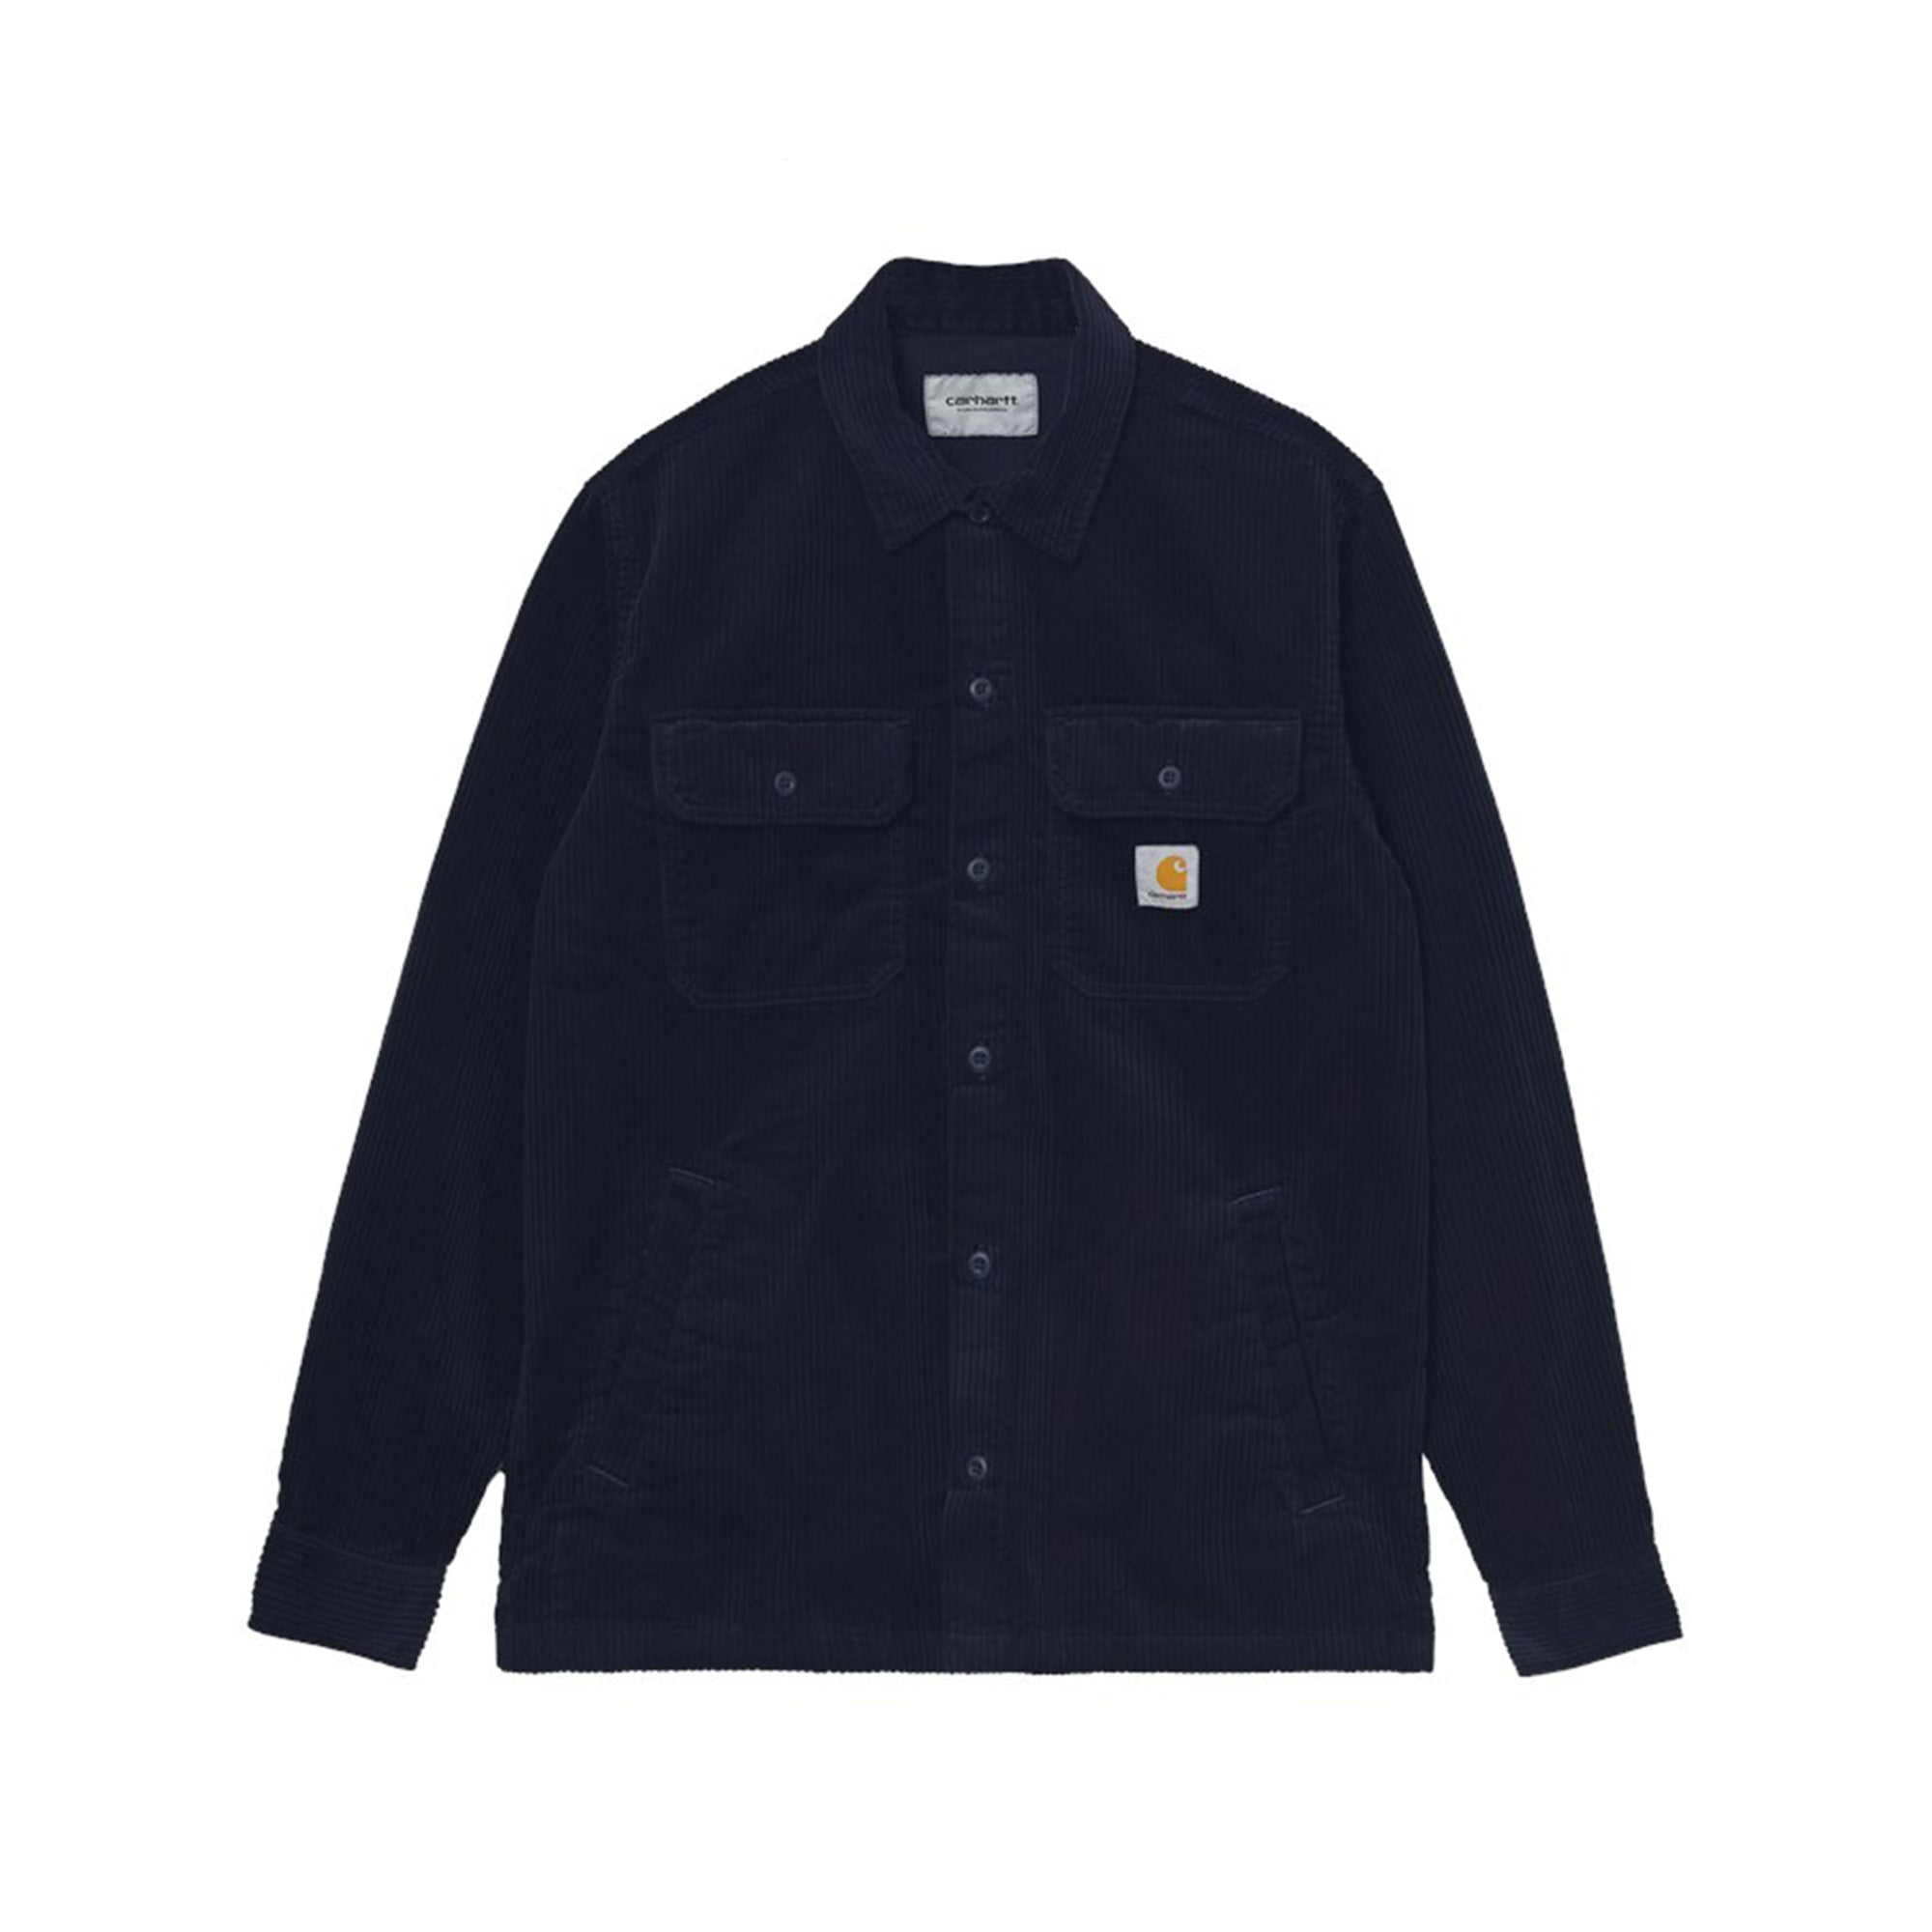 Carhartt WIP Dixon Shirt Jac: Dark Navy Rinsed - The Union Project